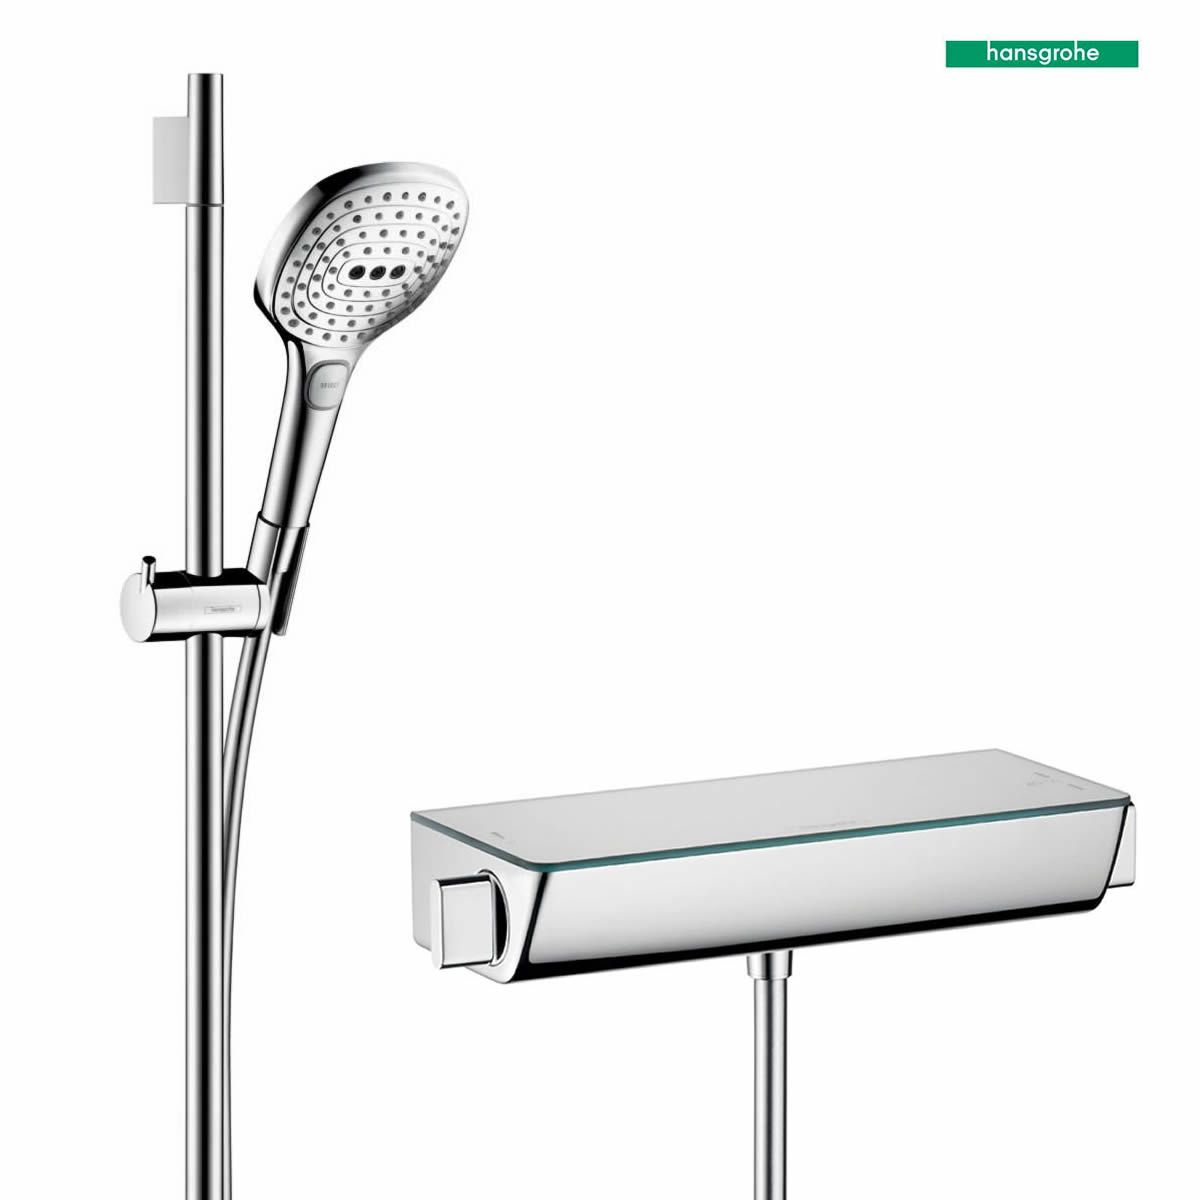 hansgrohe raindance select e 120 shower kit 27038. Black Bedroom Furniture Sets. Home Design Ideas